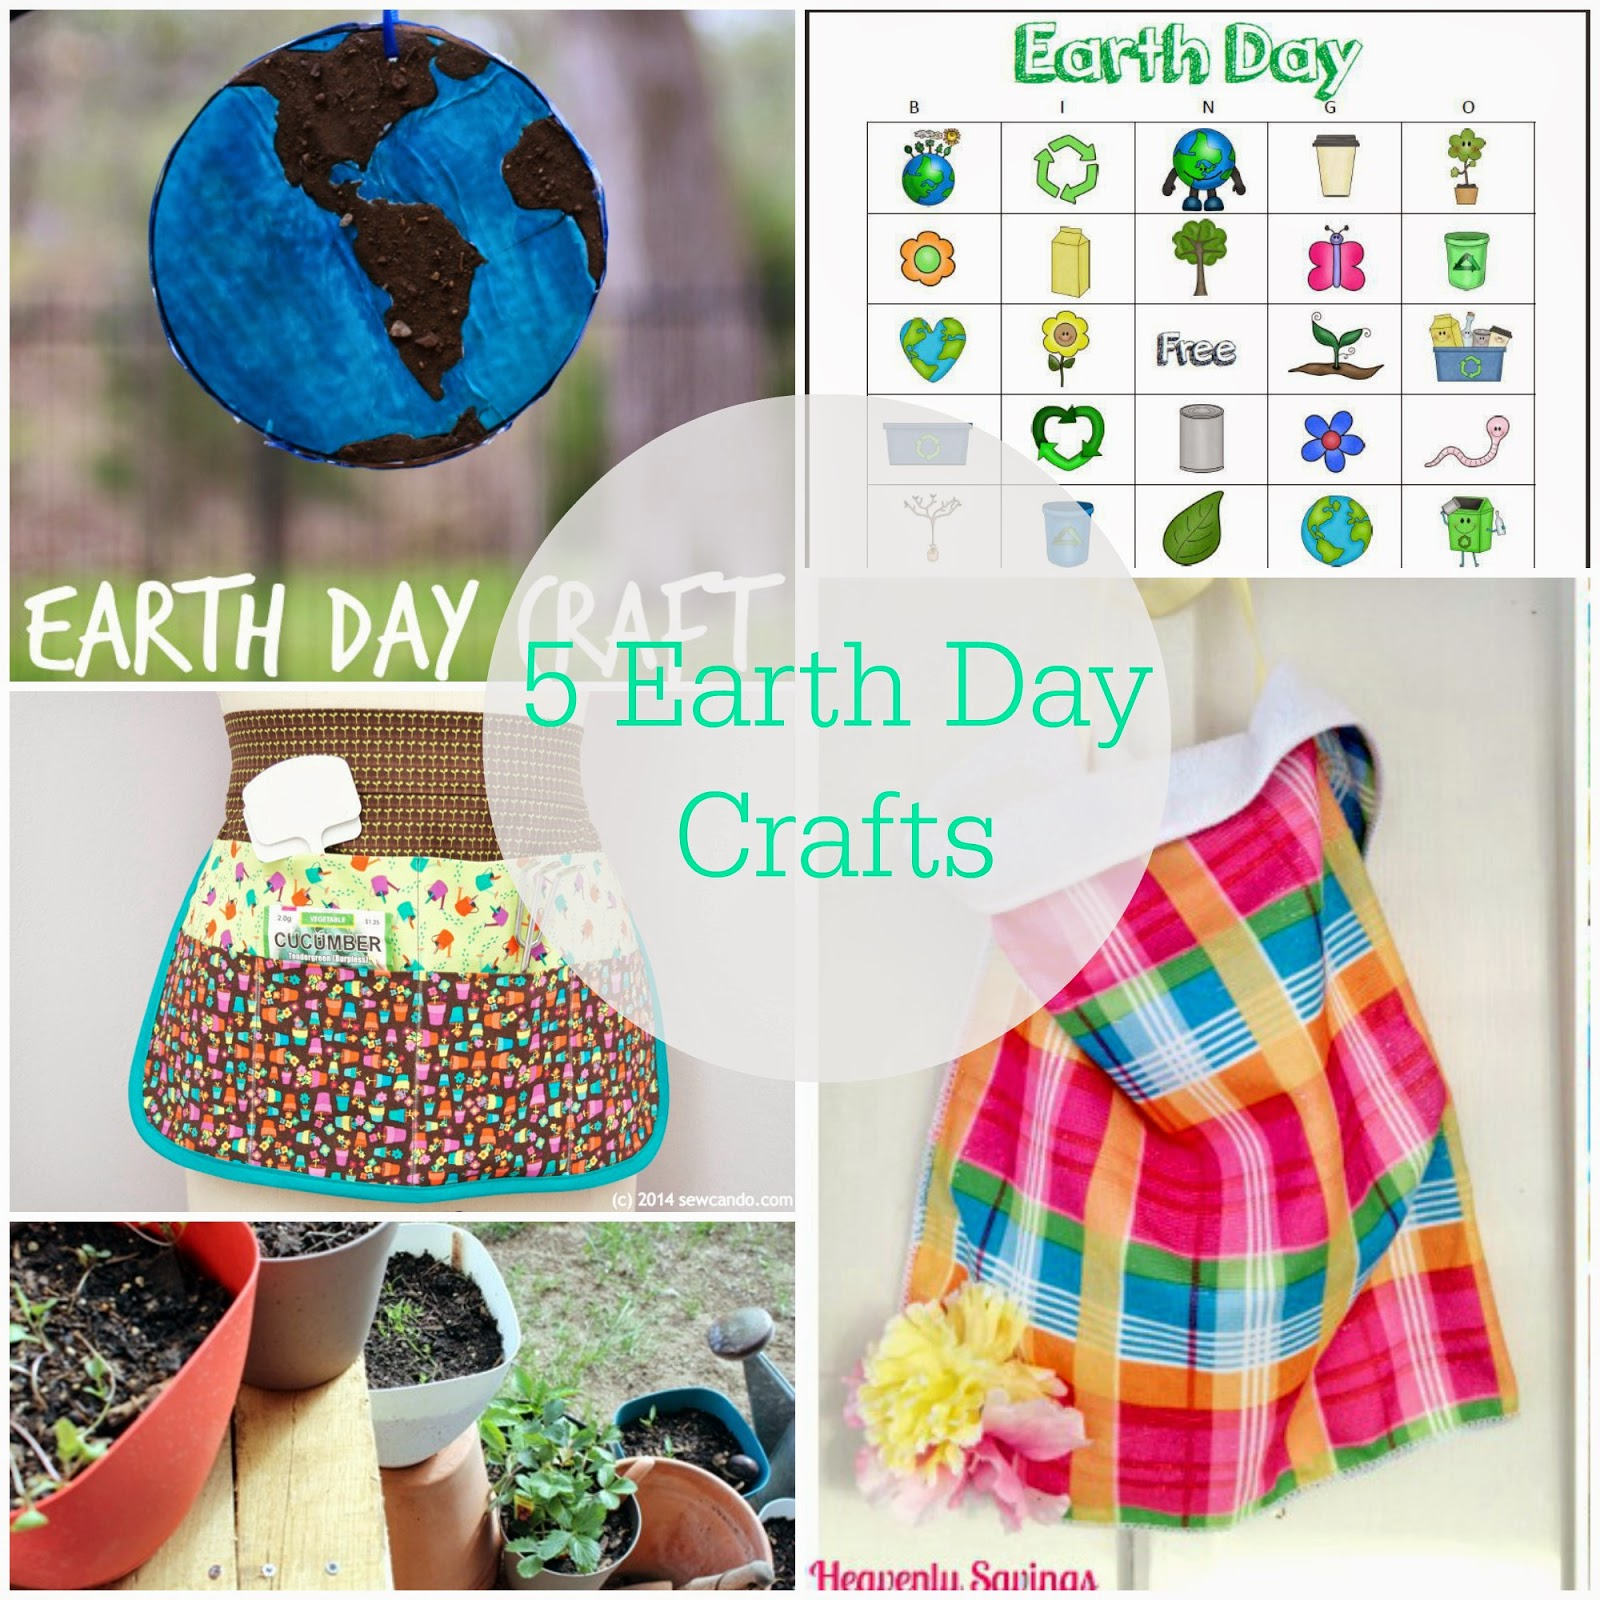 5 Earth Day Crafts AND The Project Stash Link Party